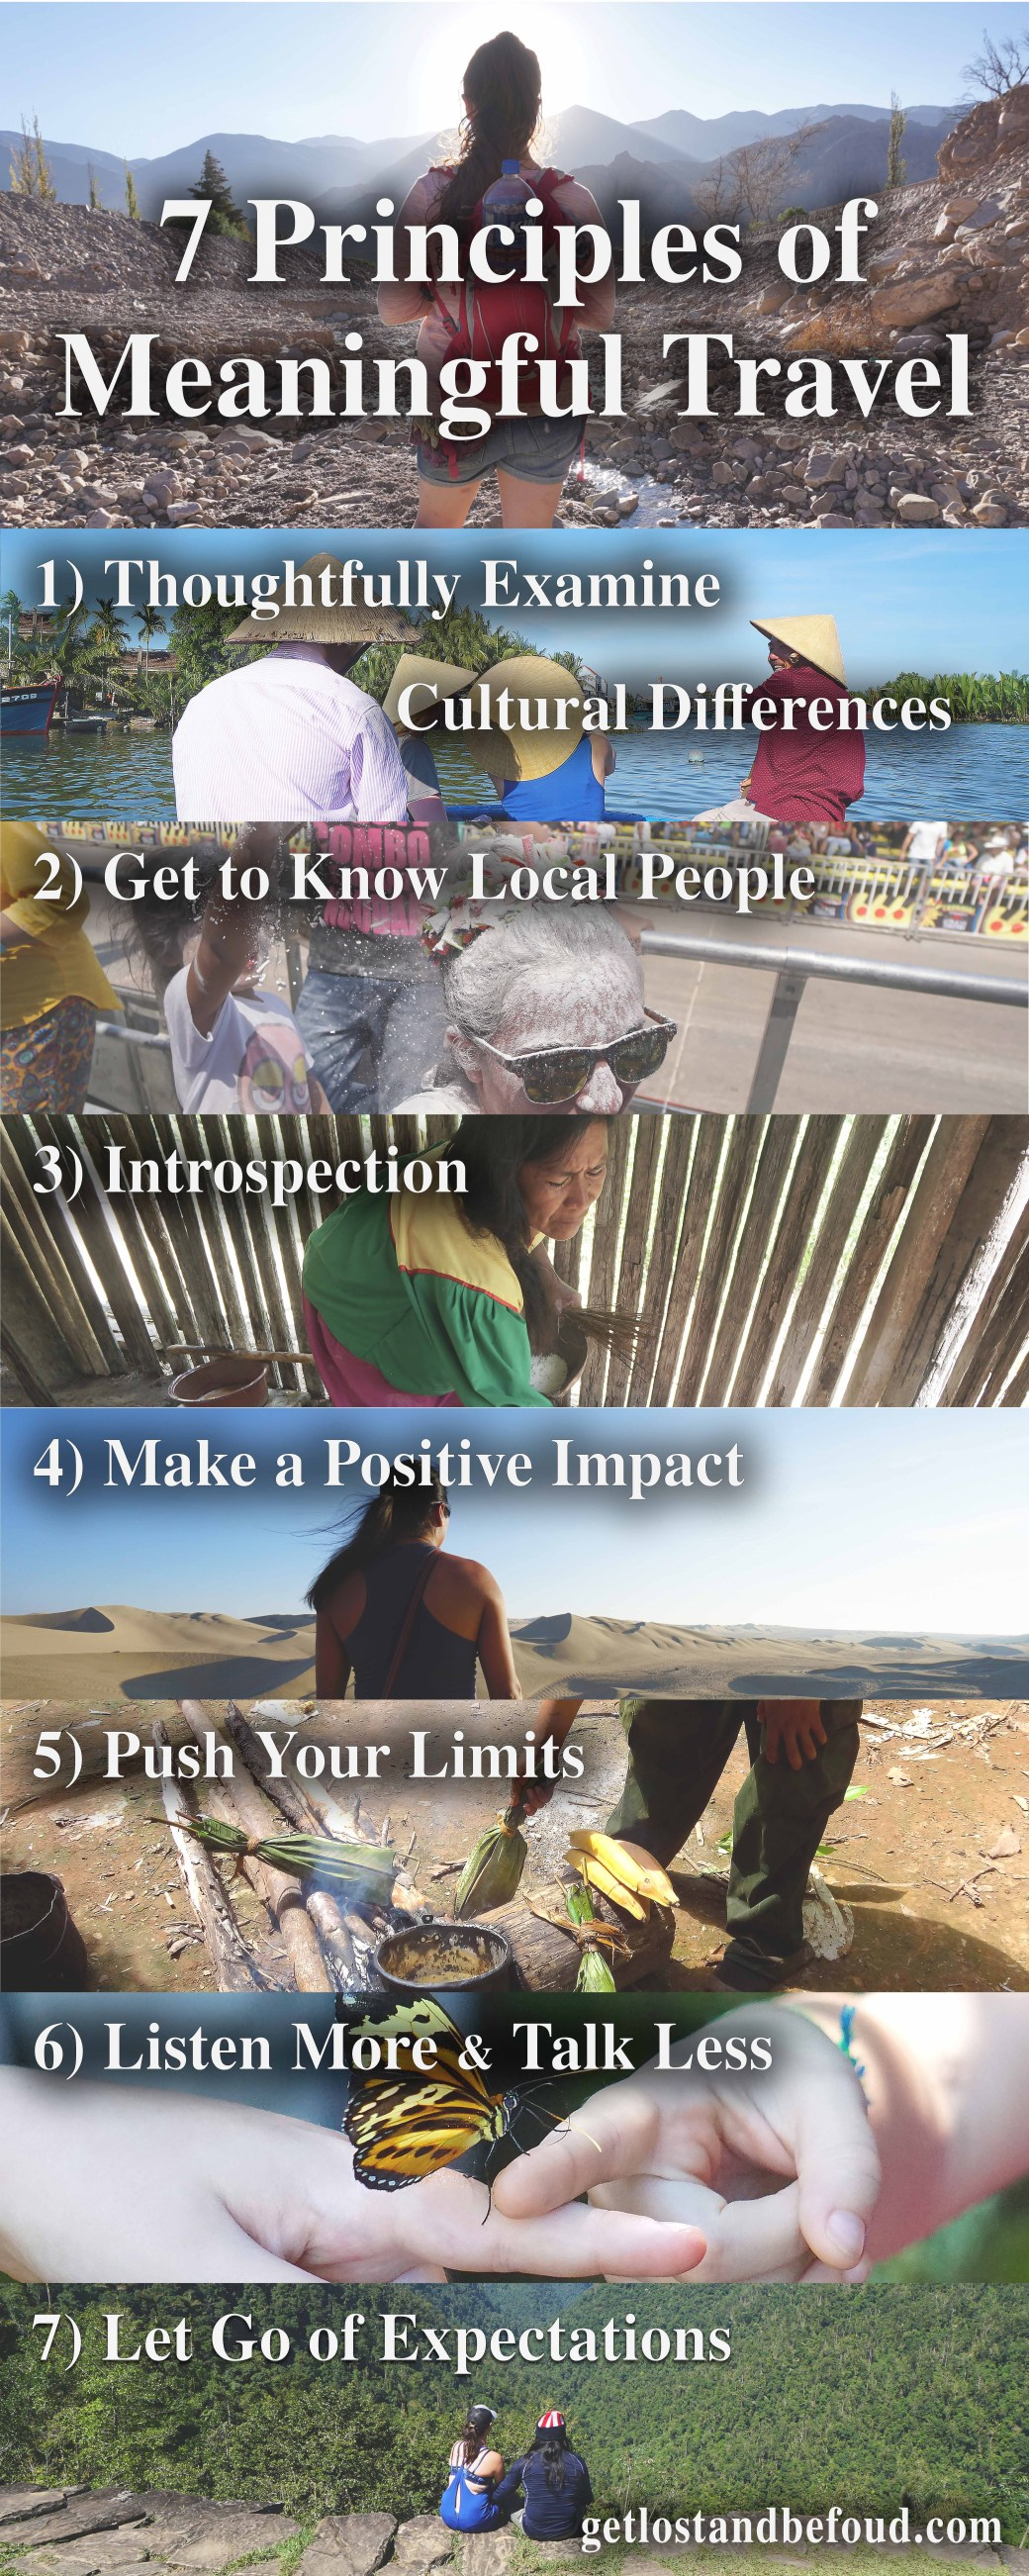 7 principles of meaningful travel.jpg